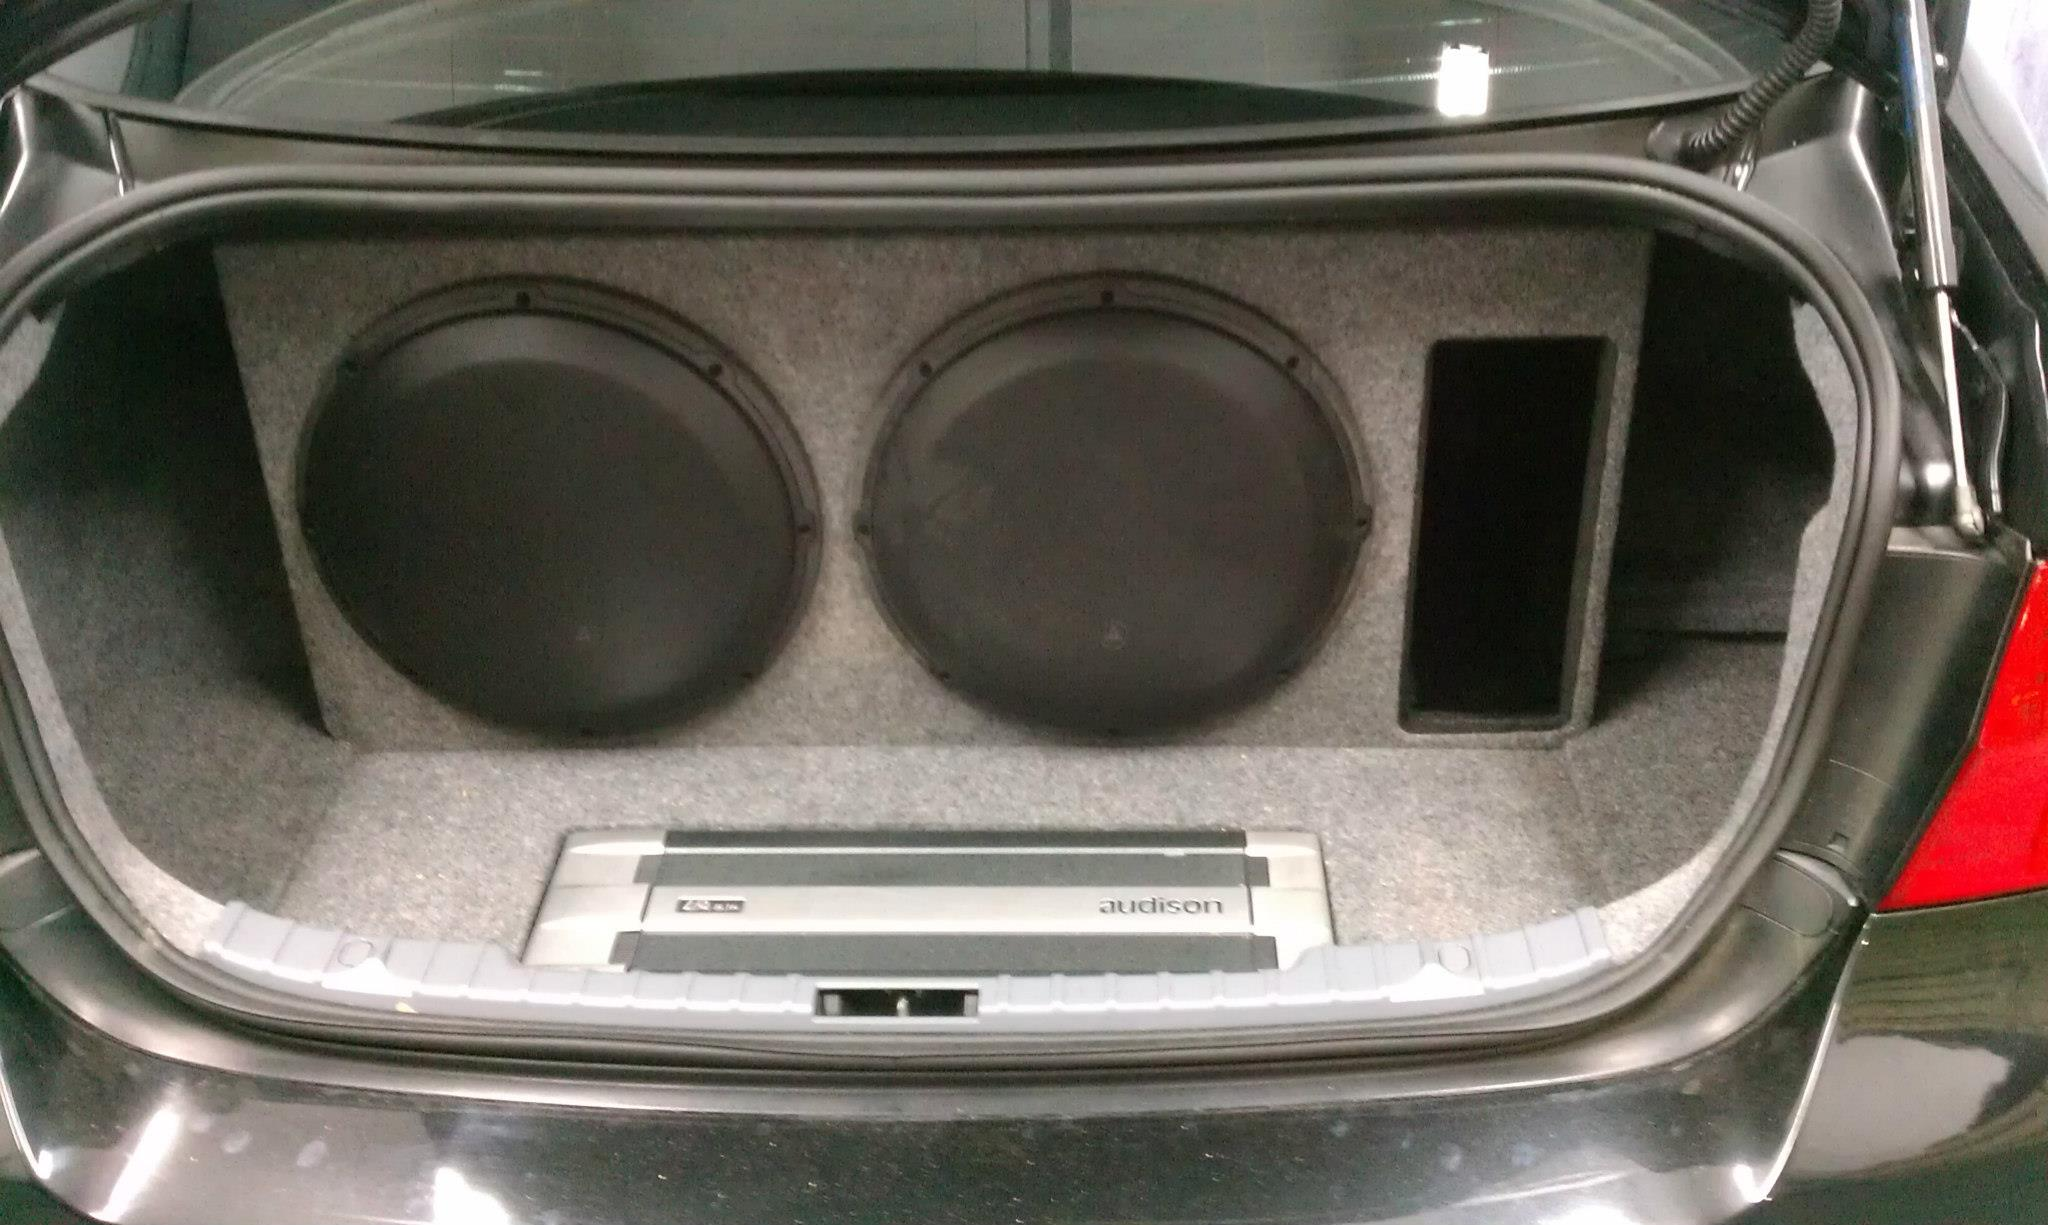 CAR AUDIO INSTALLATION AND MECHANIC SERVICES 520 278 7978